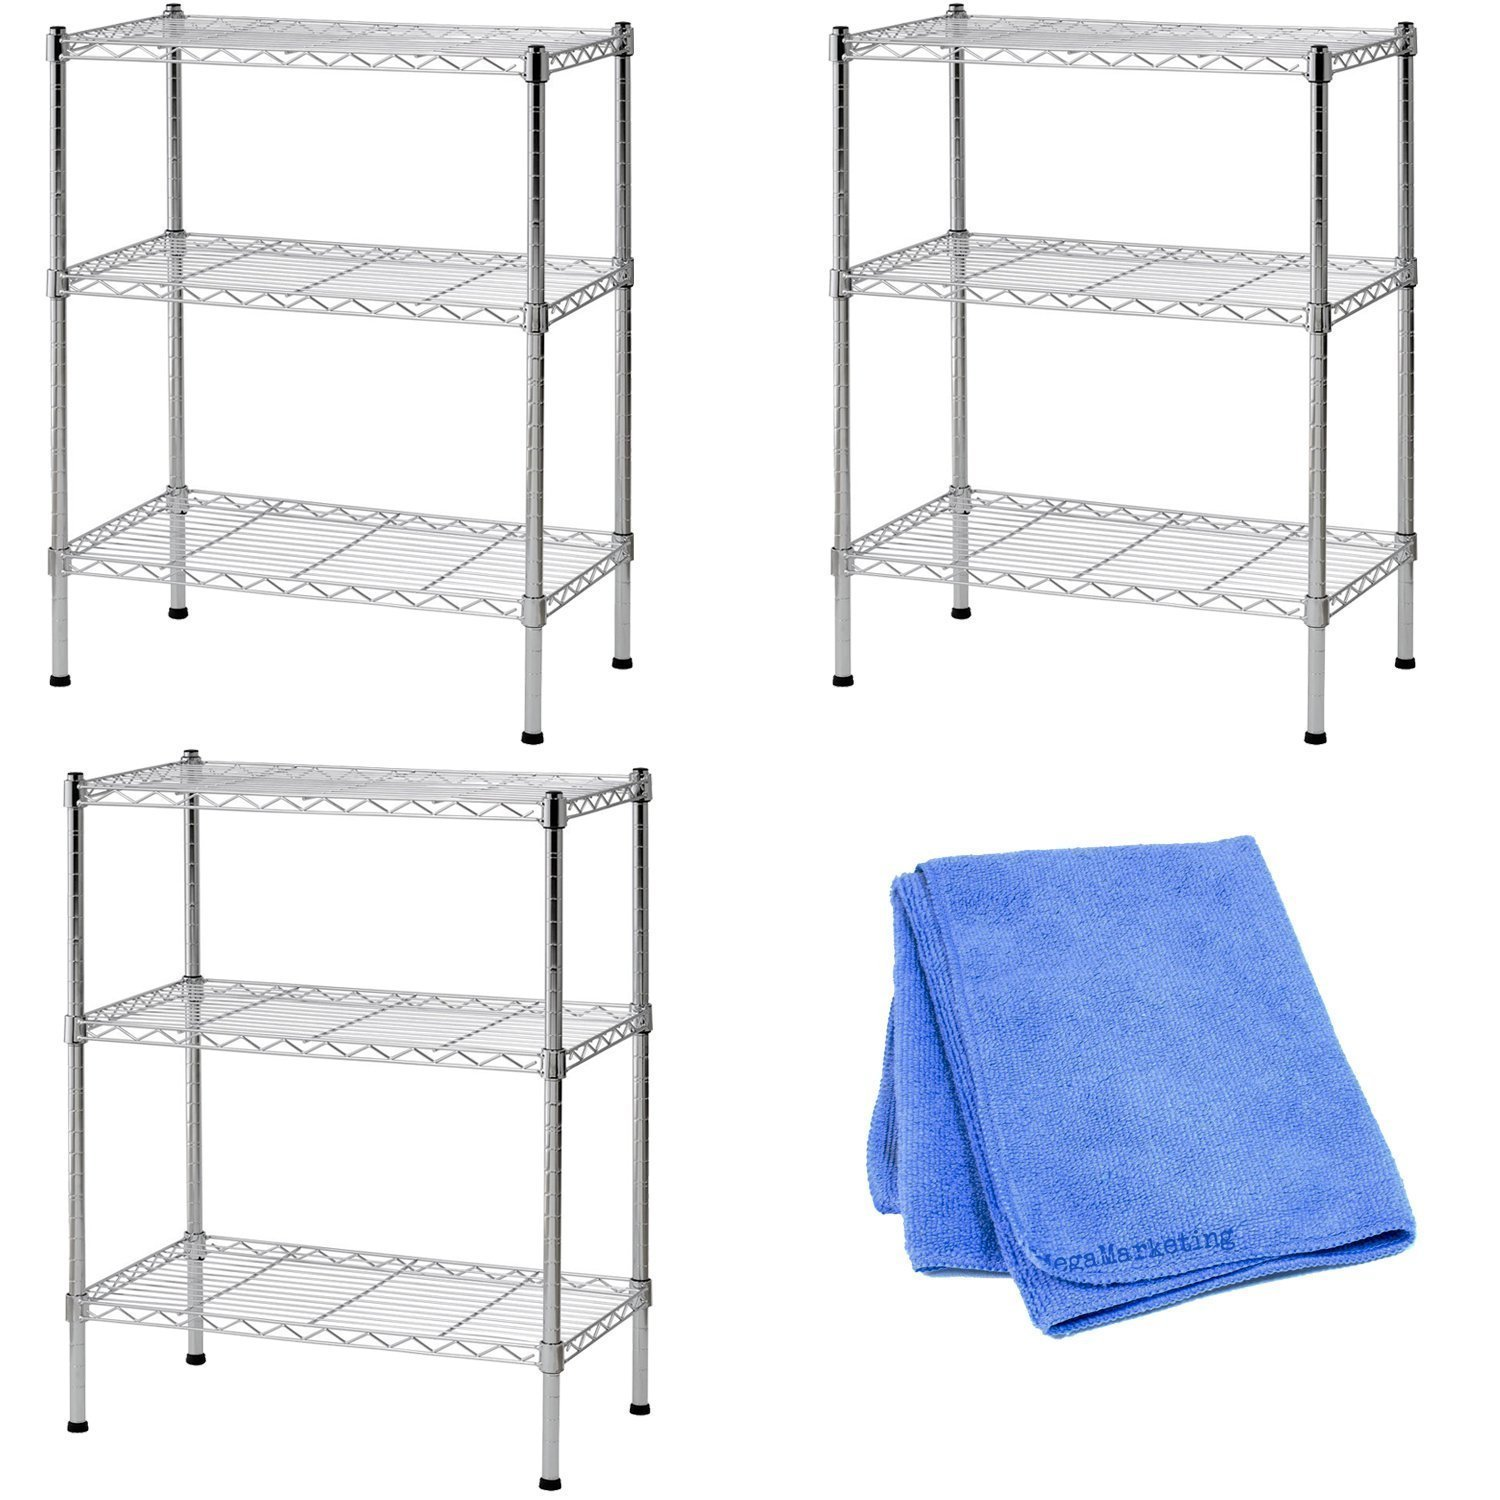 Sandusky WS241430 Wire Shelving, 24'' Width x 30'' Height x 14'' Depth, 3 Shelves, Chrome, 3-Pack with Dust Wipe Cloth by Sandüsky